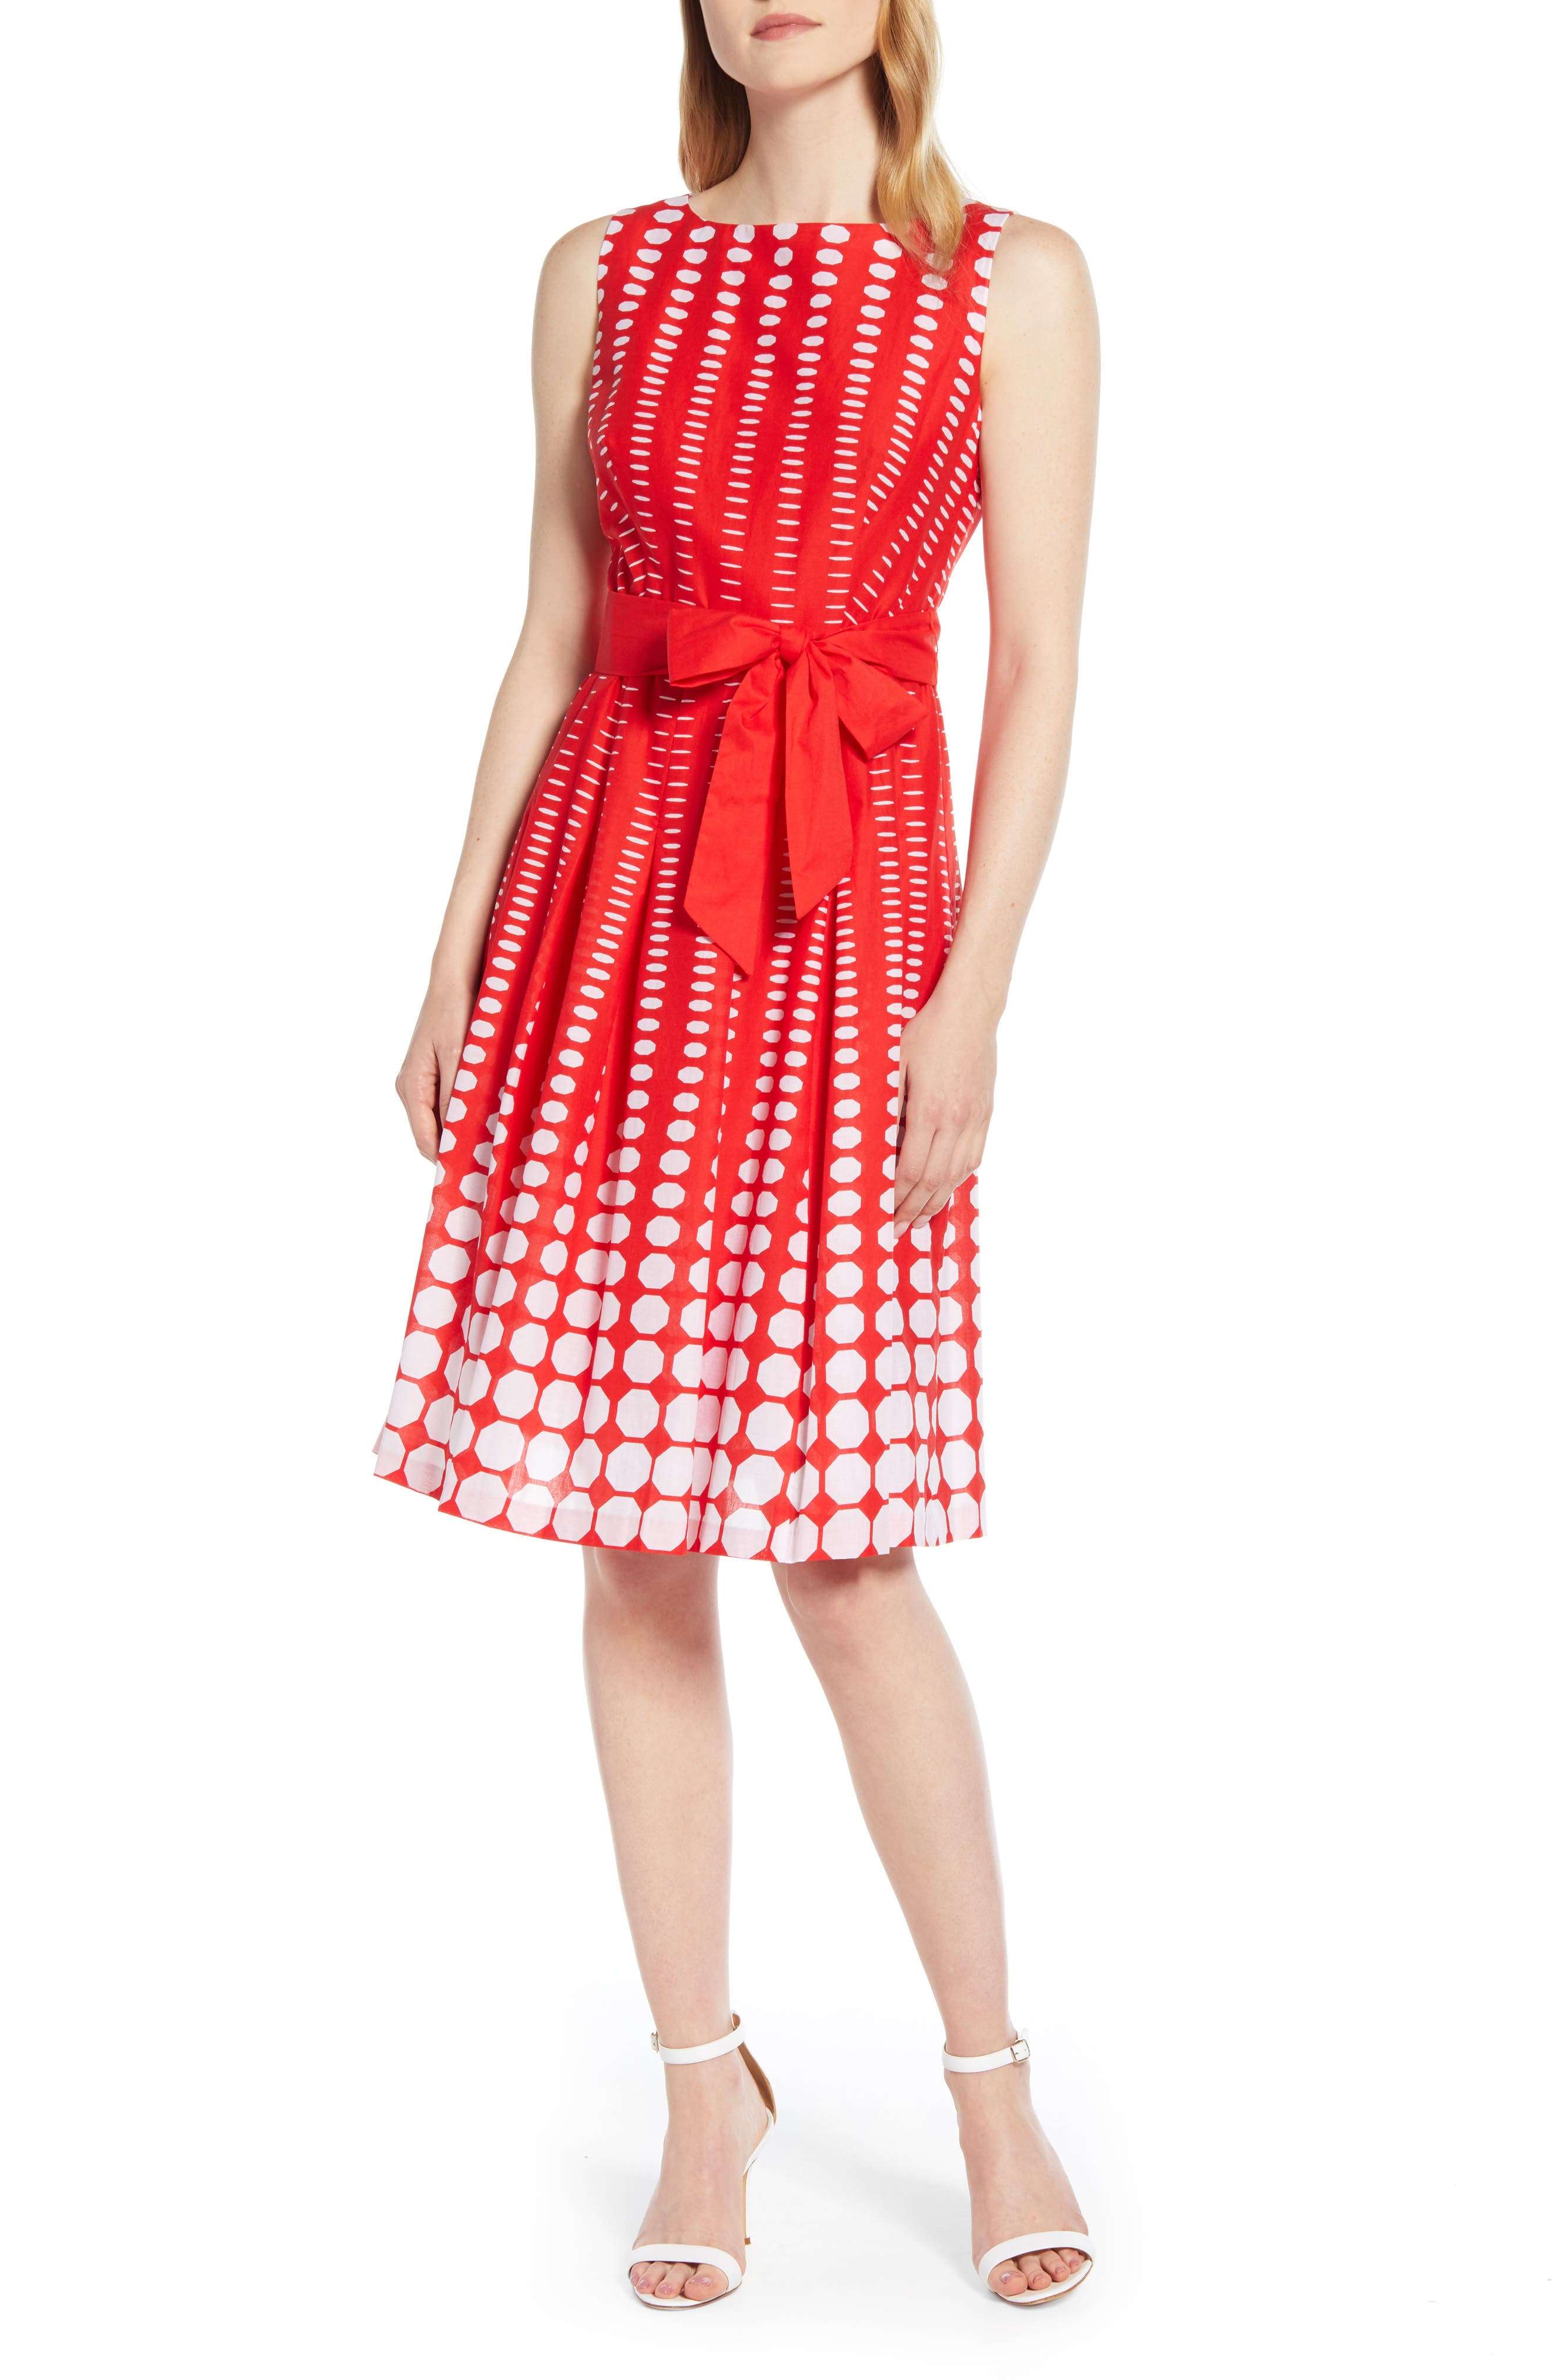 Anne Klein Octogon Print Fit & Flare Cotton Dress, Red